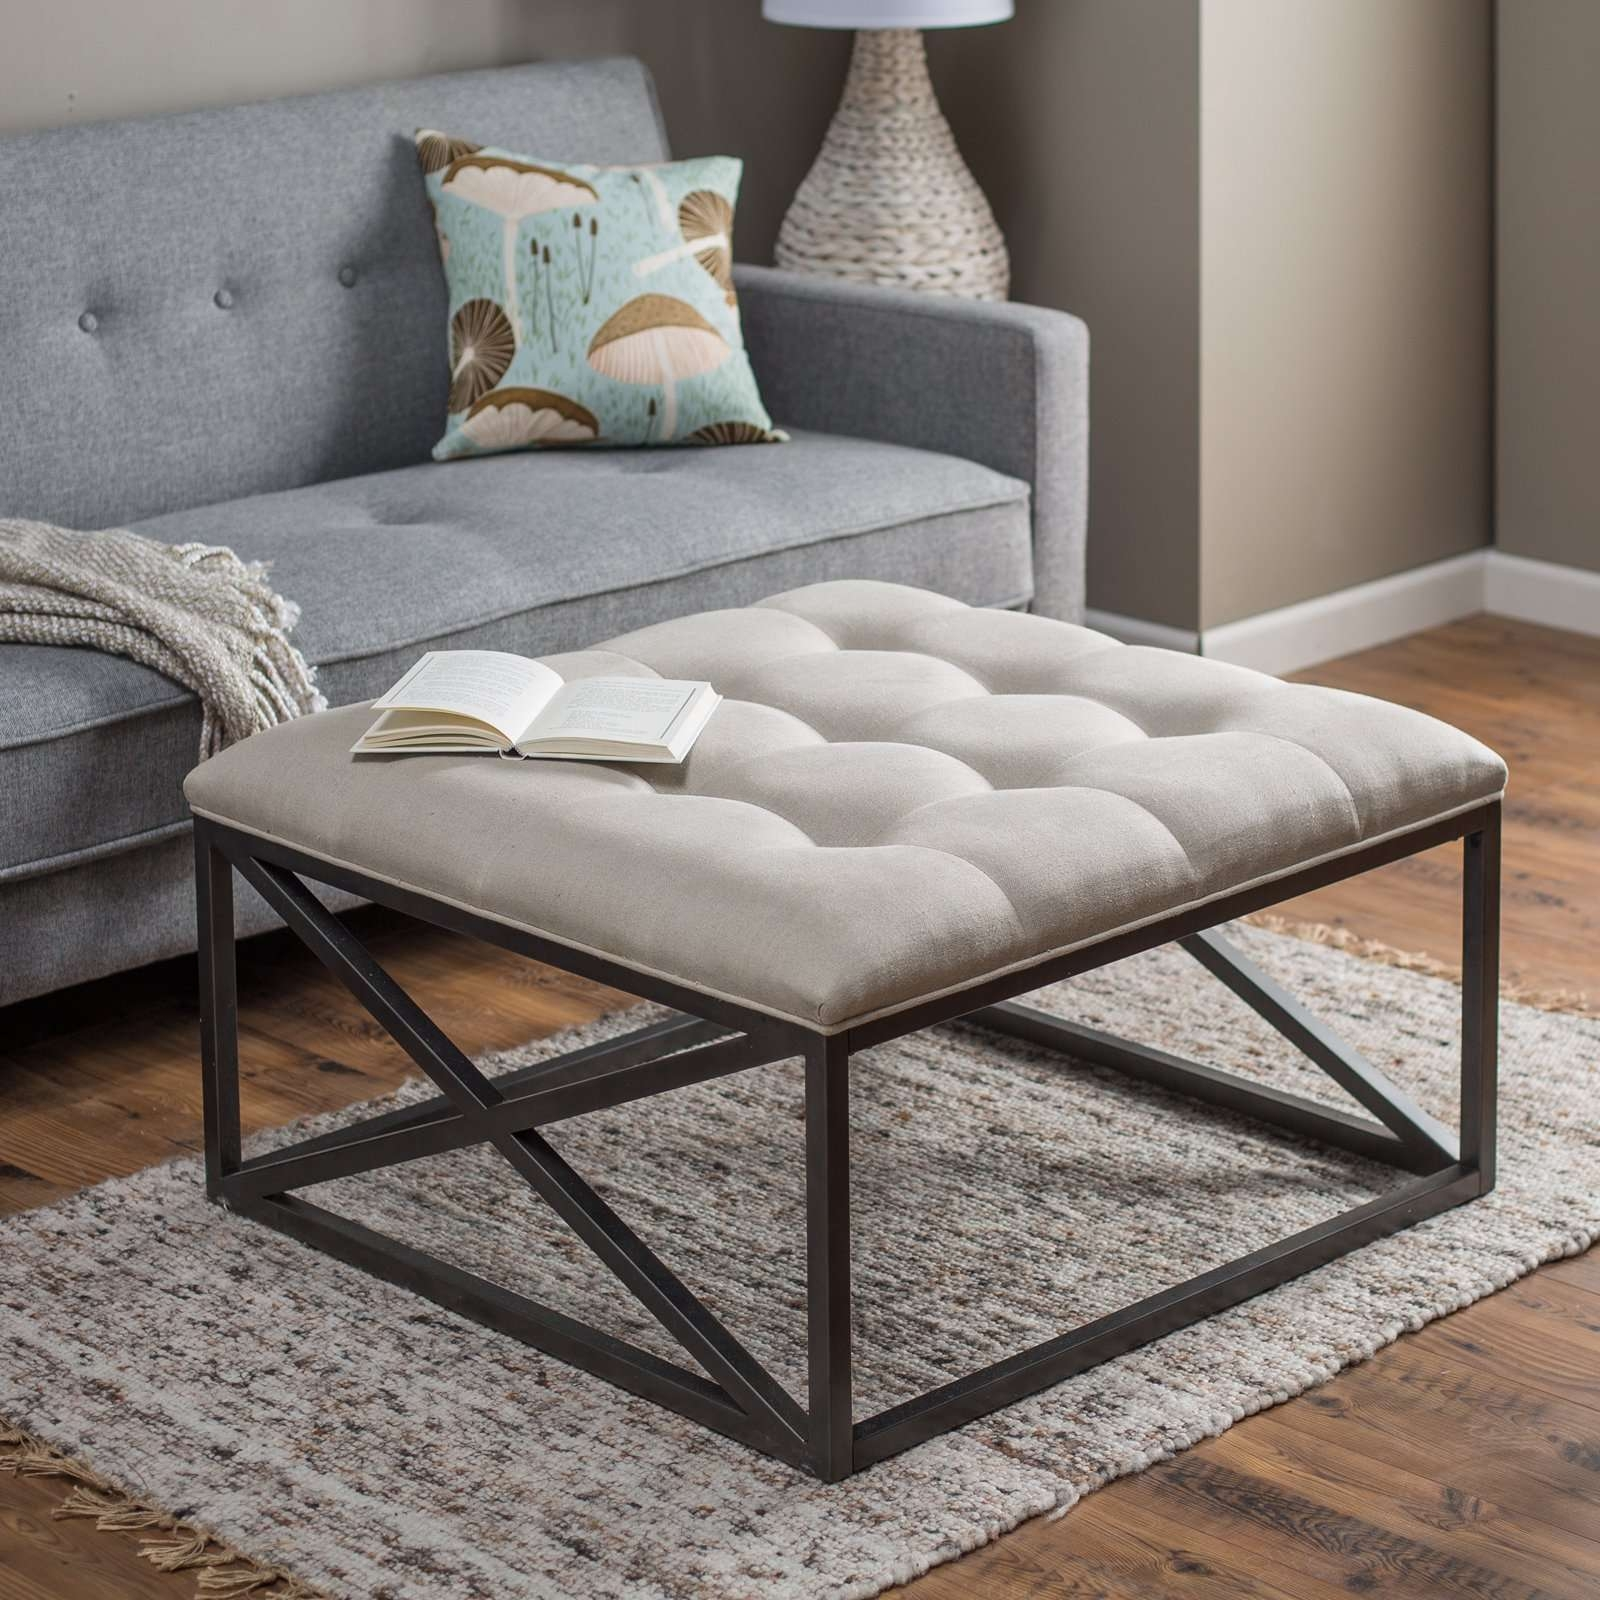 Belham Living Grayson Tufted Coffee Table Ottoman (View 5 of 20)